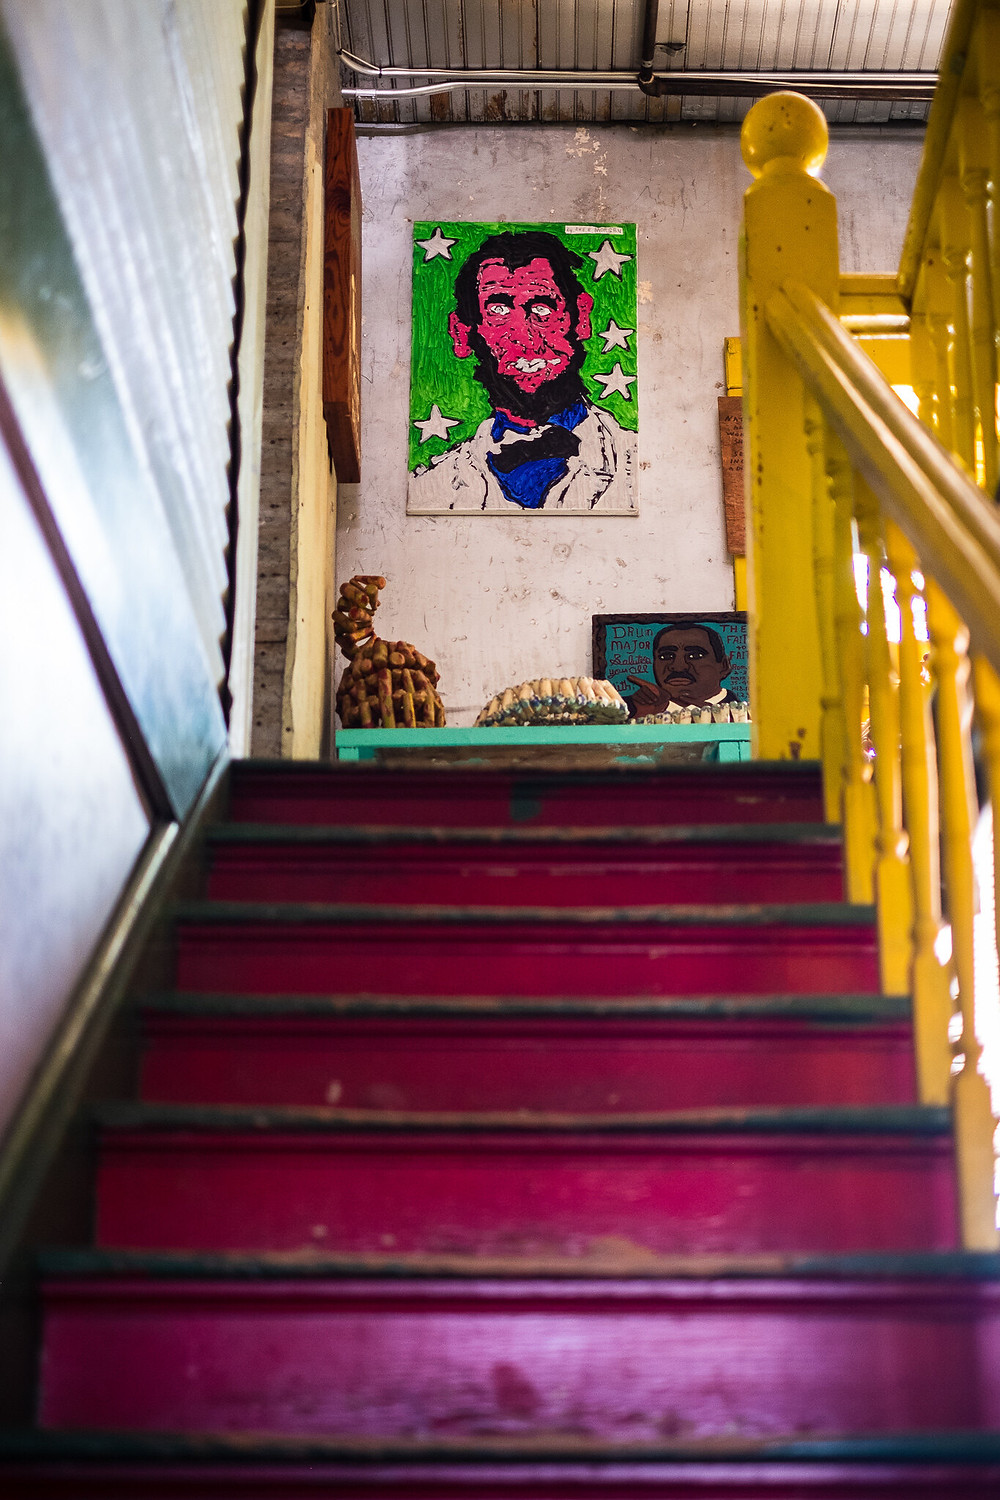 interior stairs and pop art abe lincoln portrait